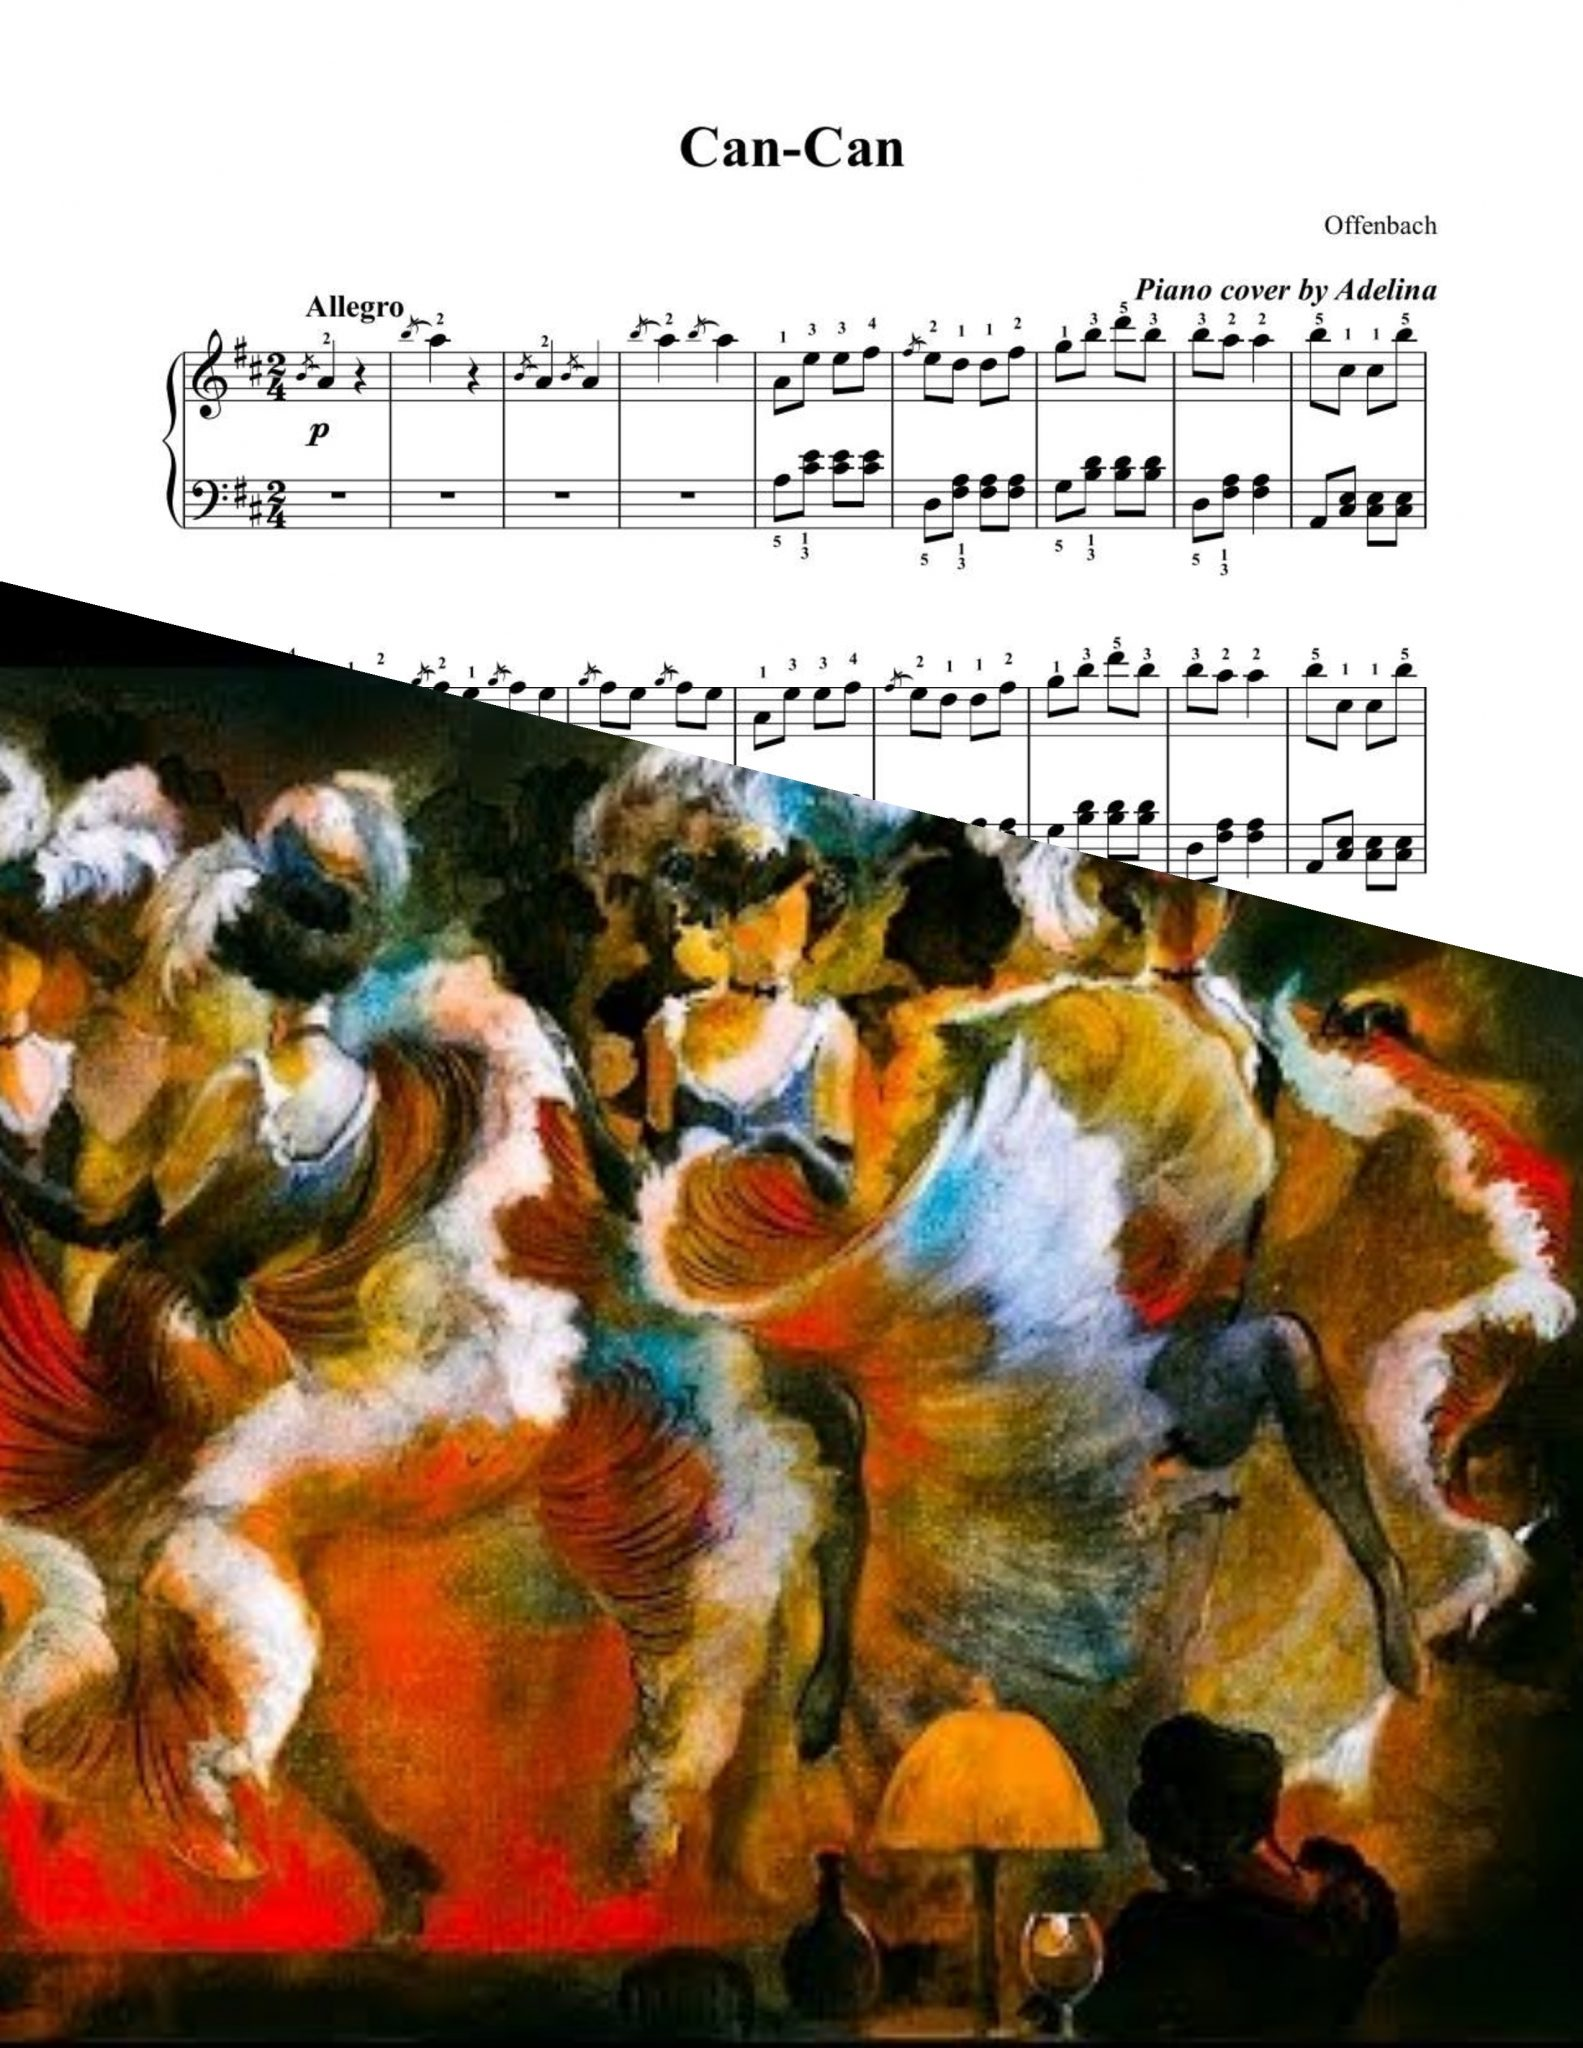 Can can offenbach piano sheet music for Hs offenbach